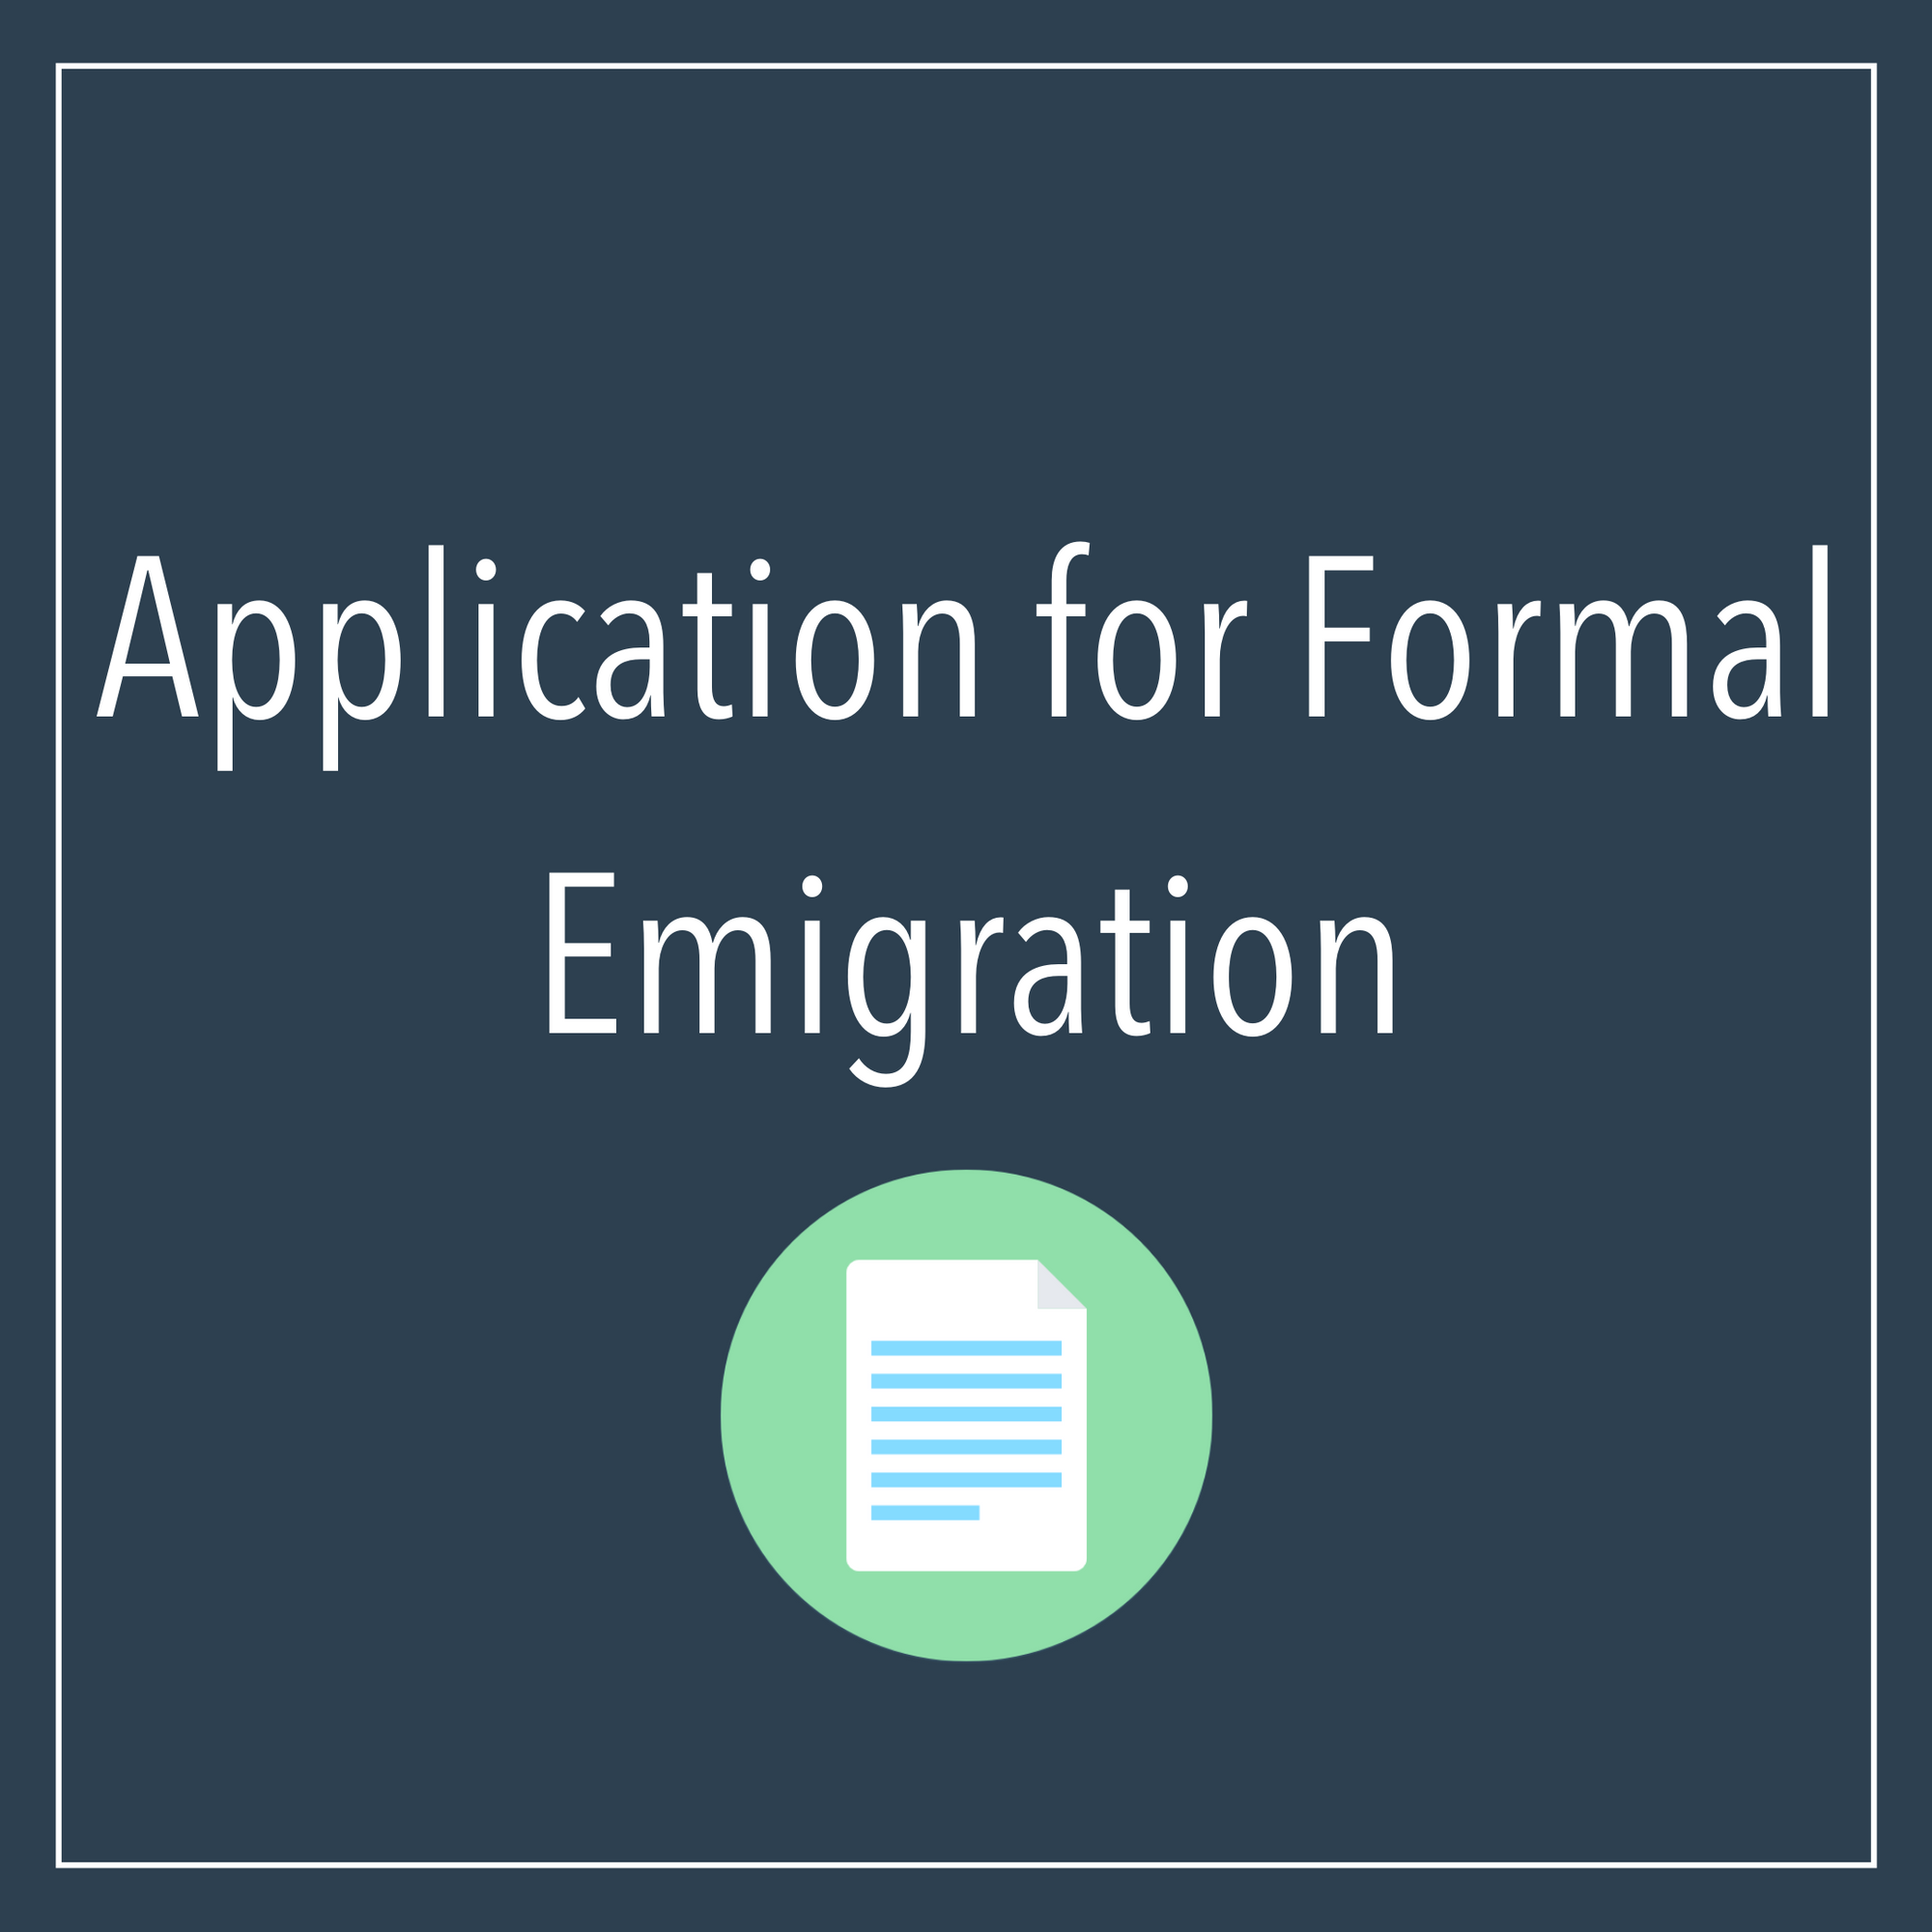 Application For Formal Emigration And Tax Clearance